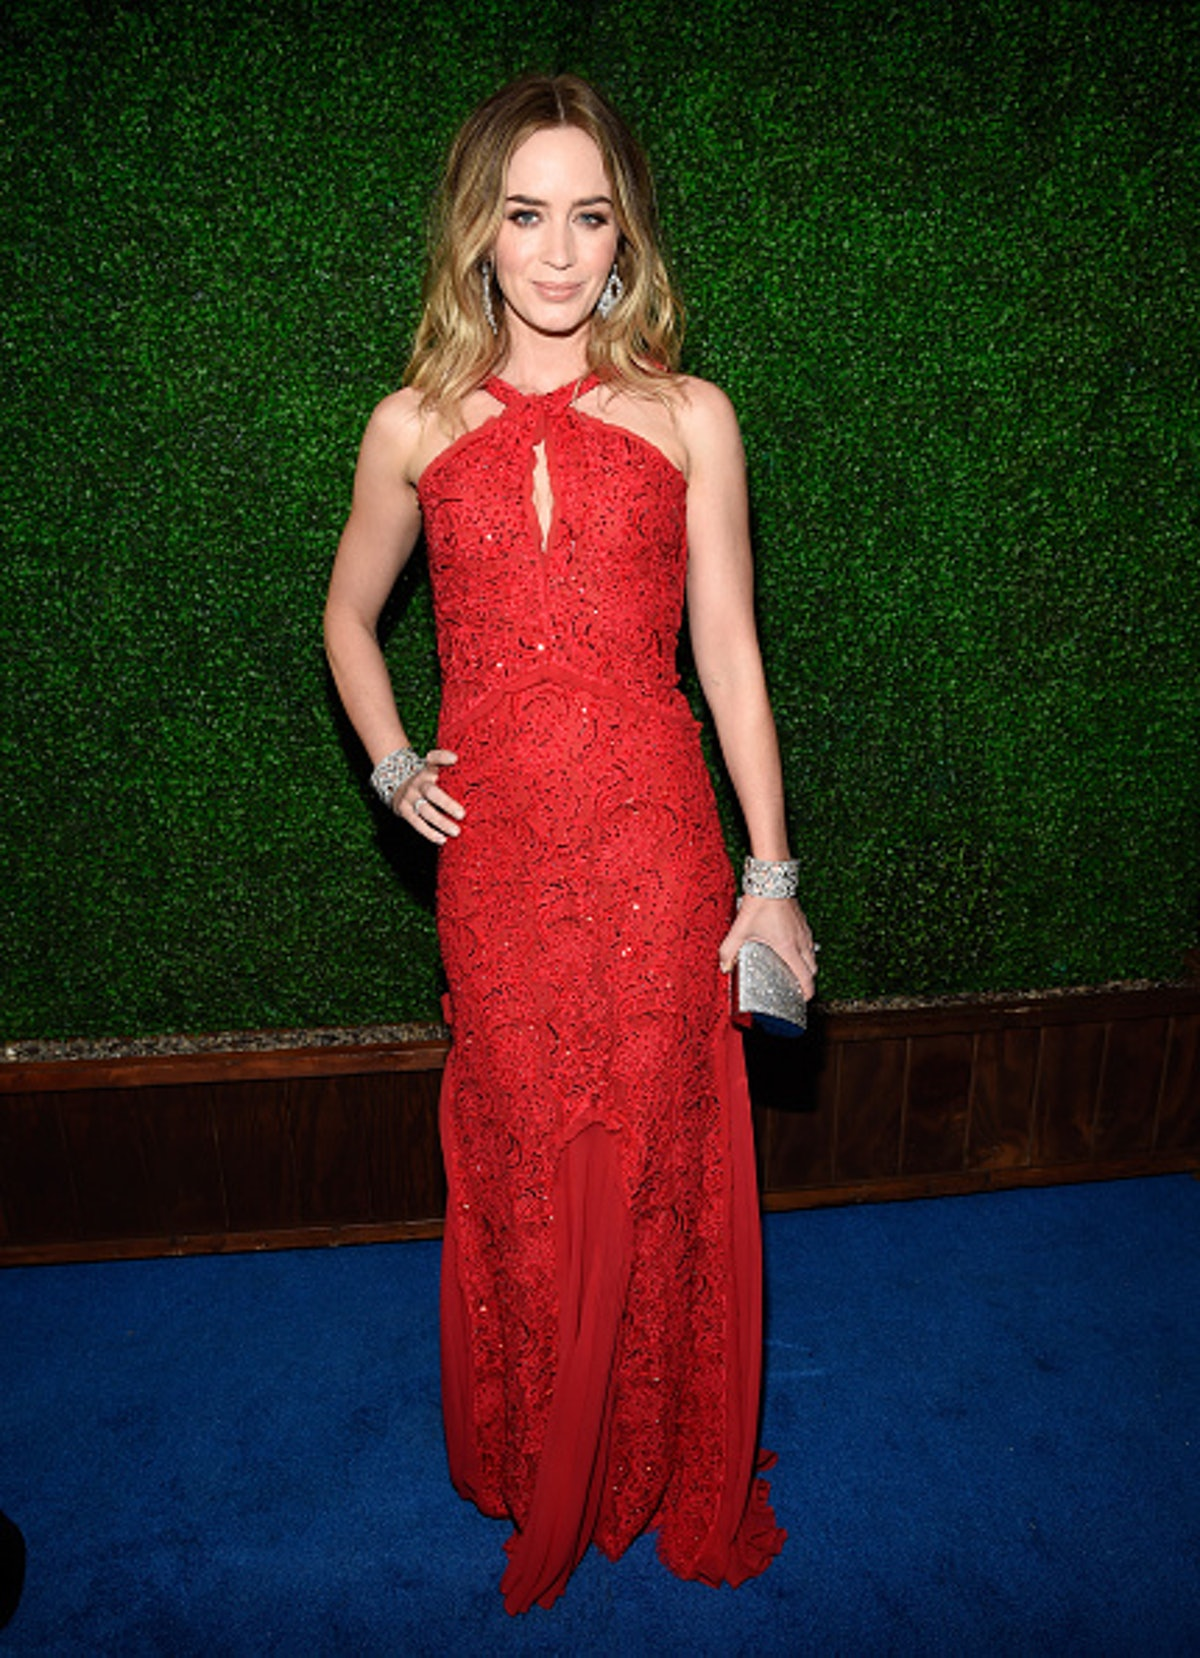 Emily Blunt in a sophisticated red gown.